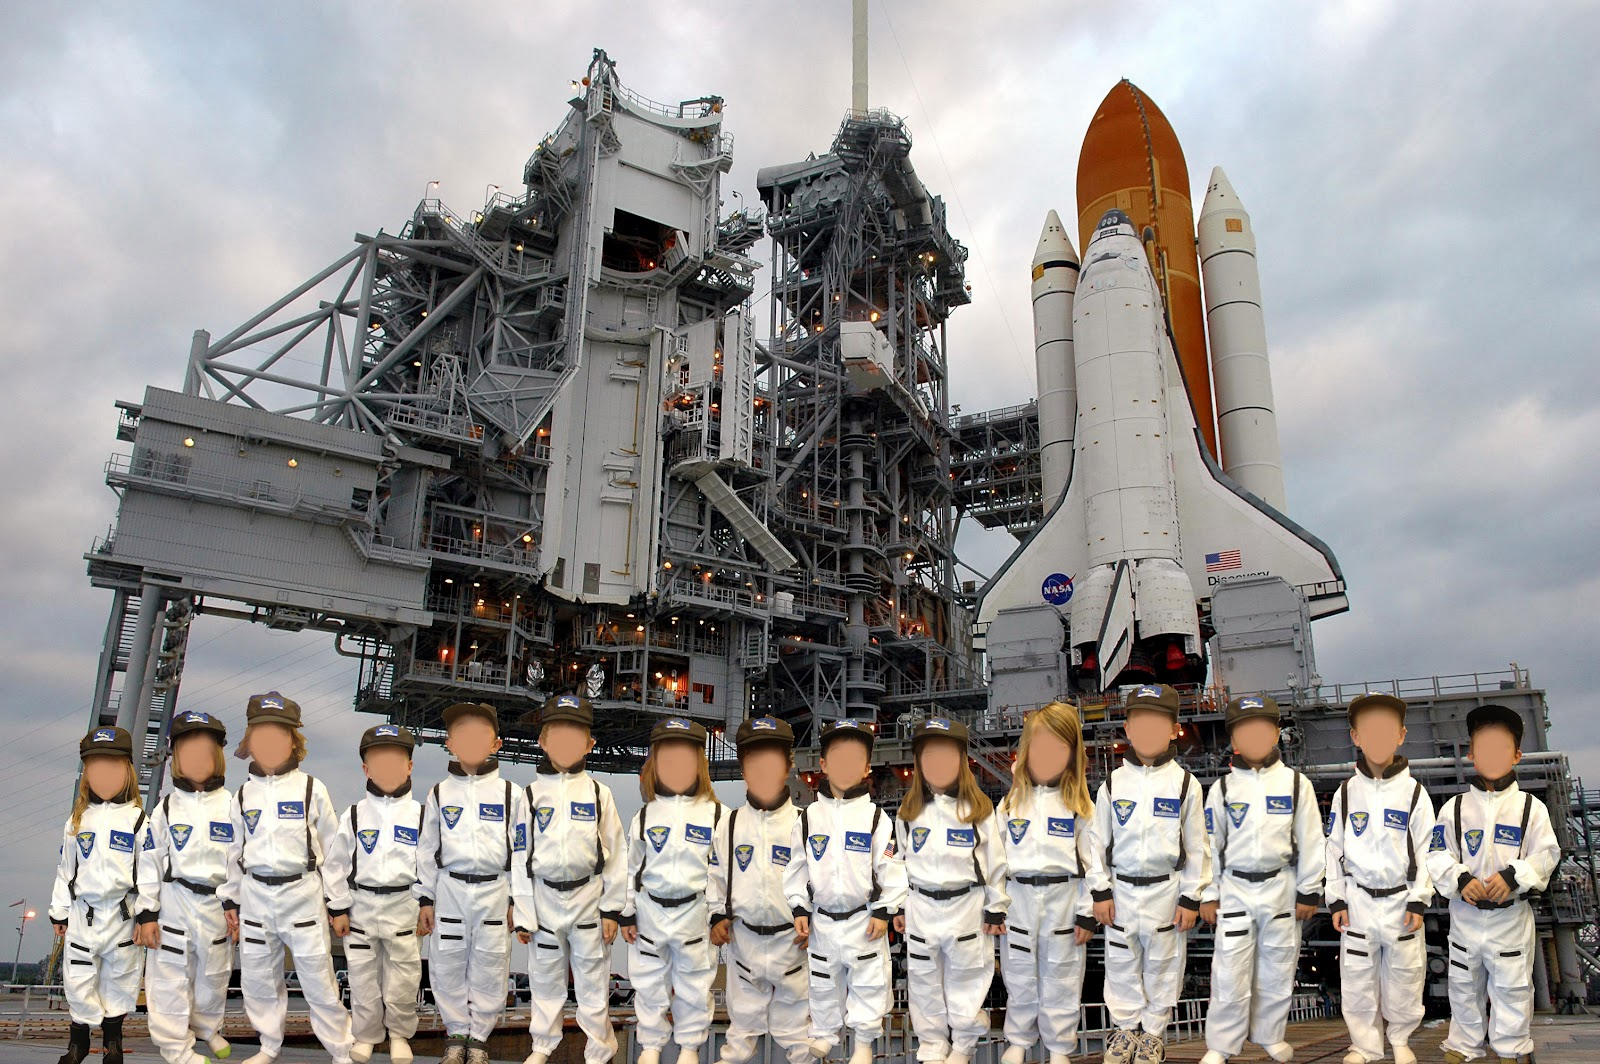 Astronaut Corps - Pics about space